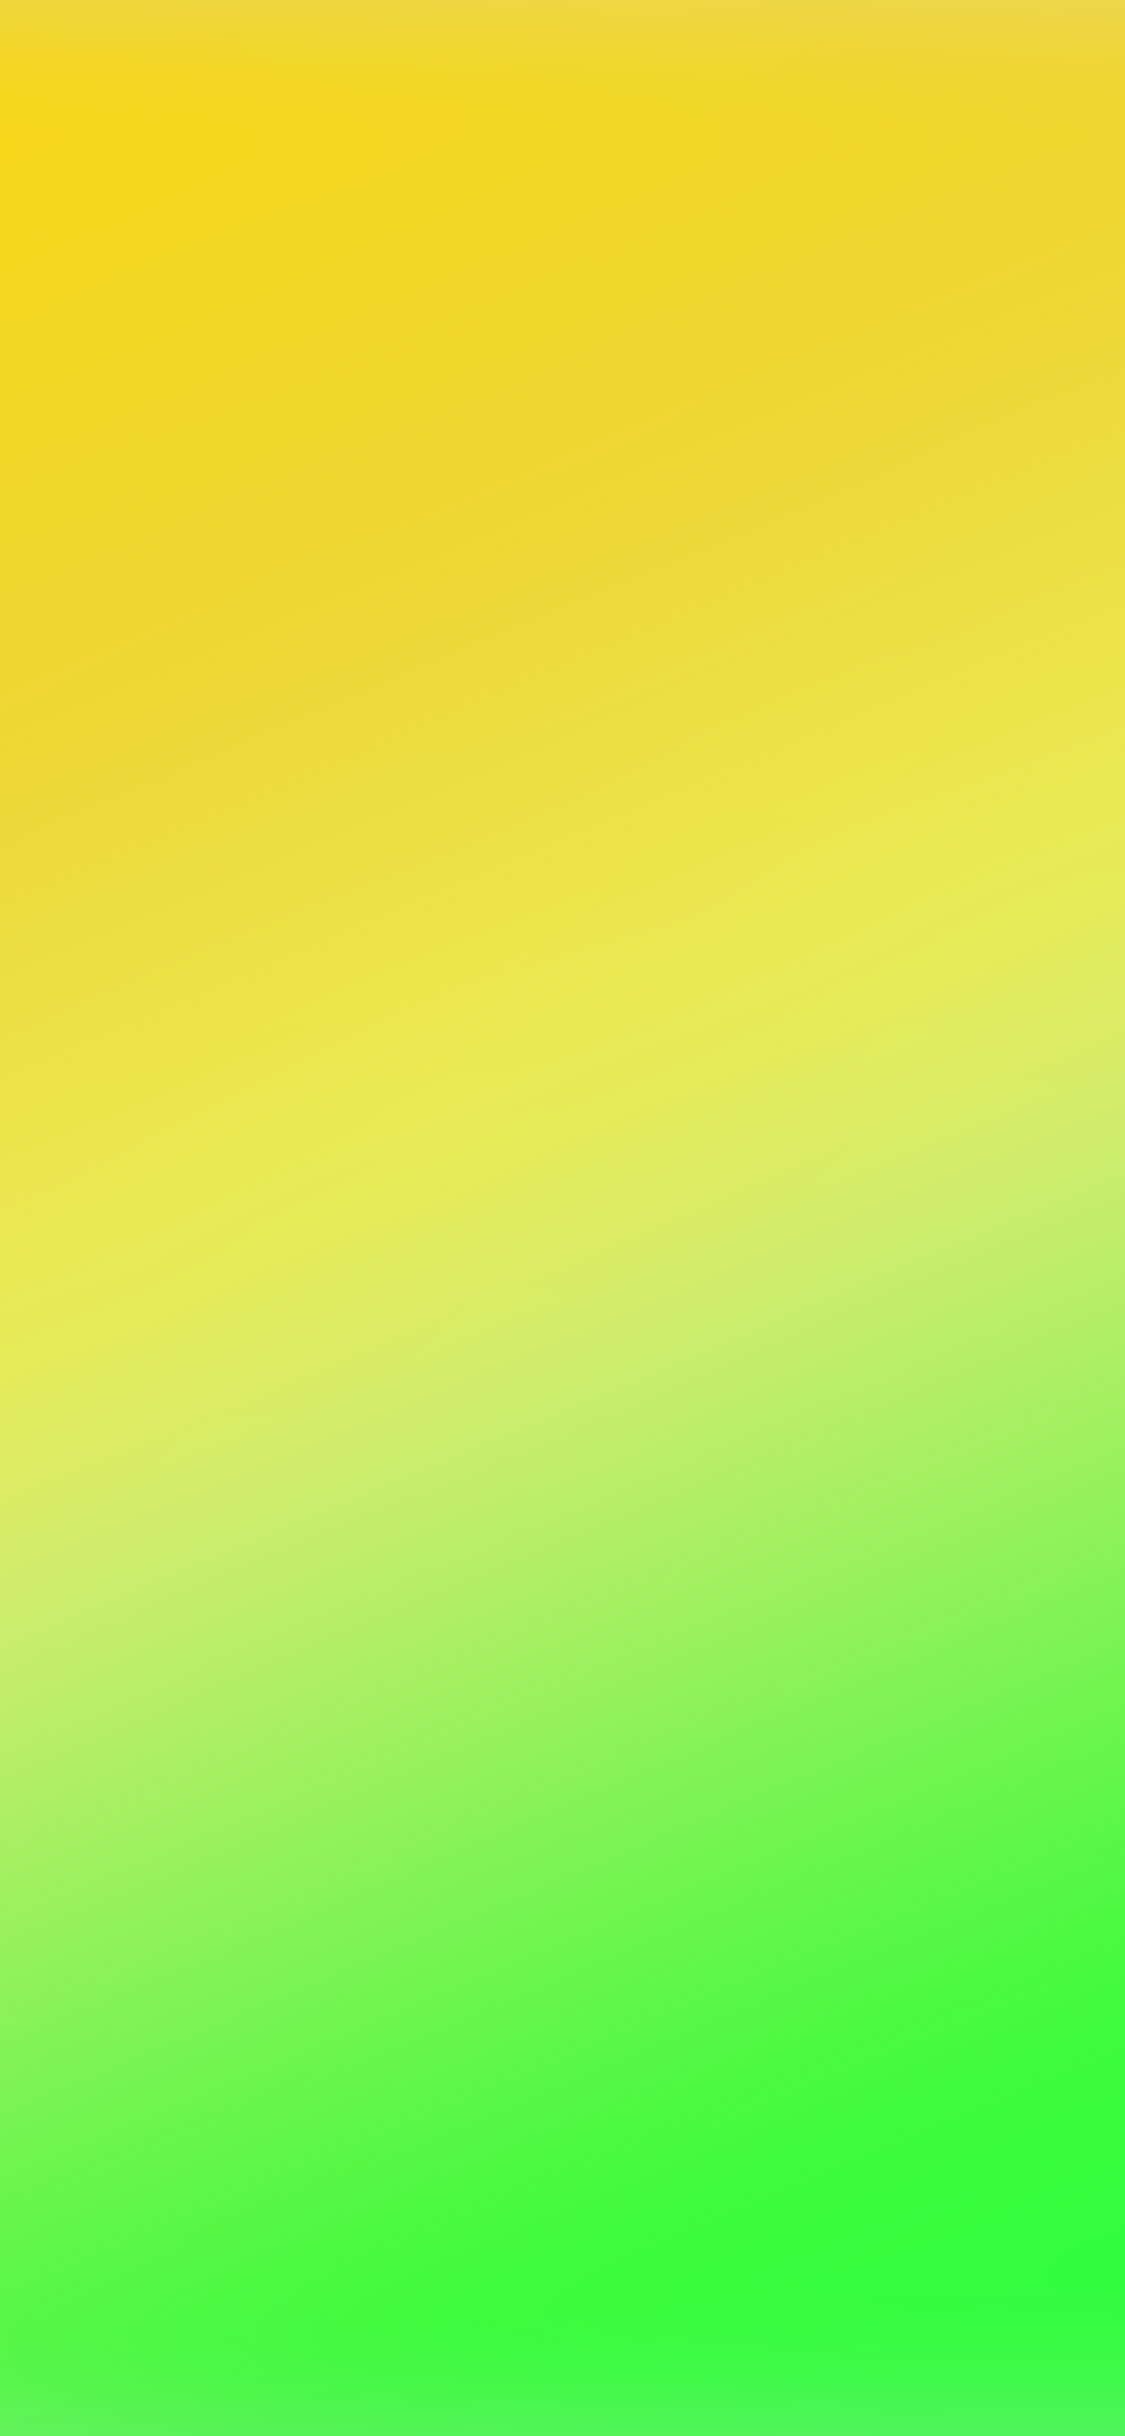 Download Yellow Green Wallpaper Hd Backgrounds Download